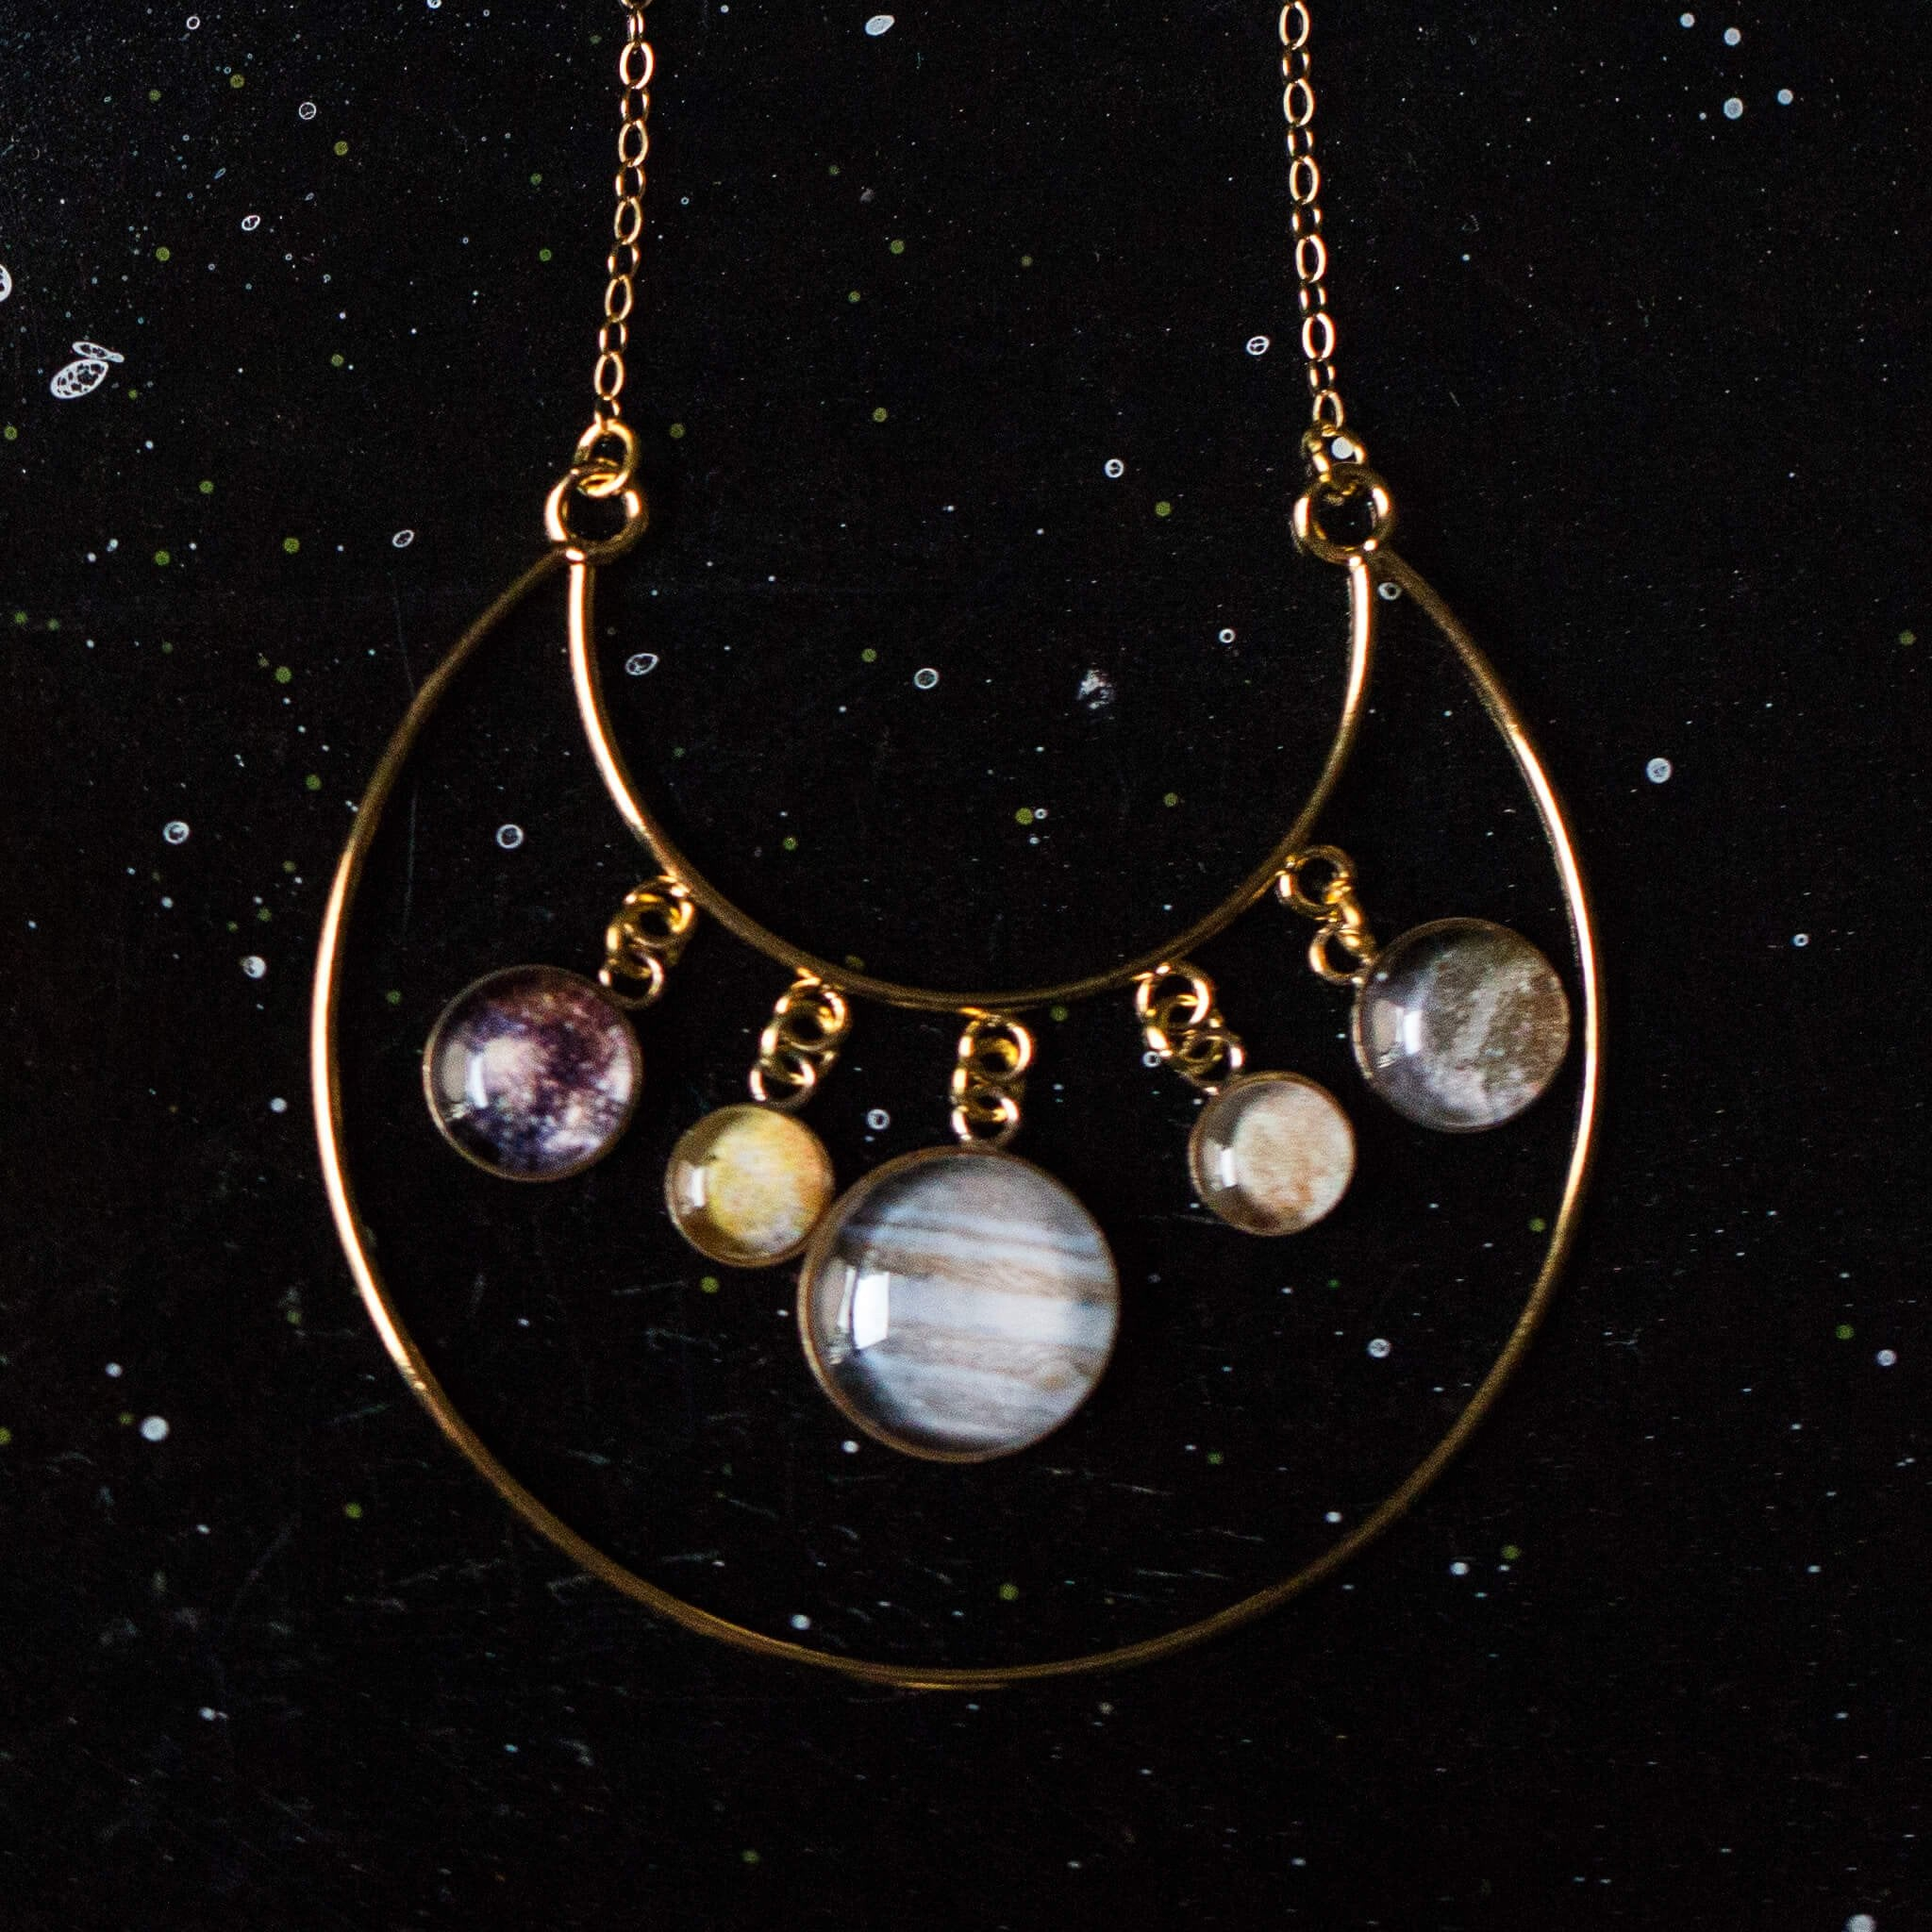 Galilean Moons of Jupiter Statement Necklace